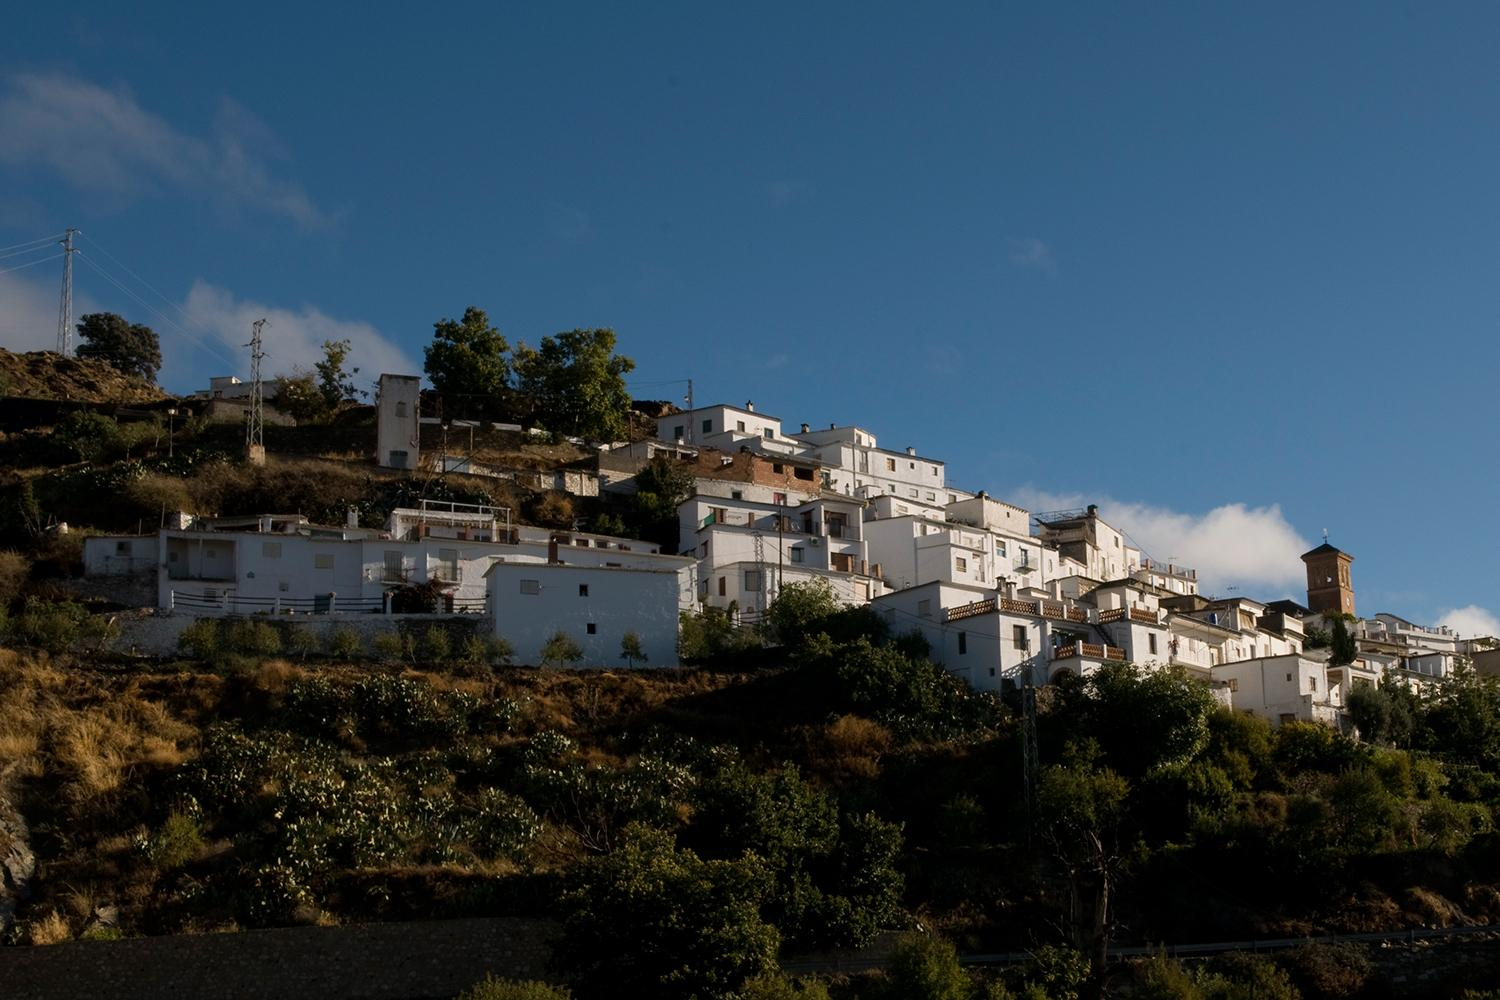 Escape to Las Alpujarras on single-centre self-guided walking holiday